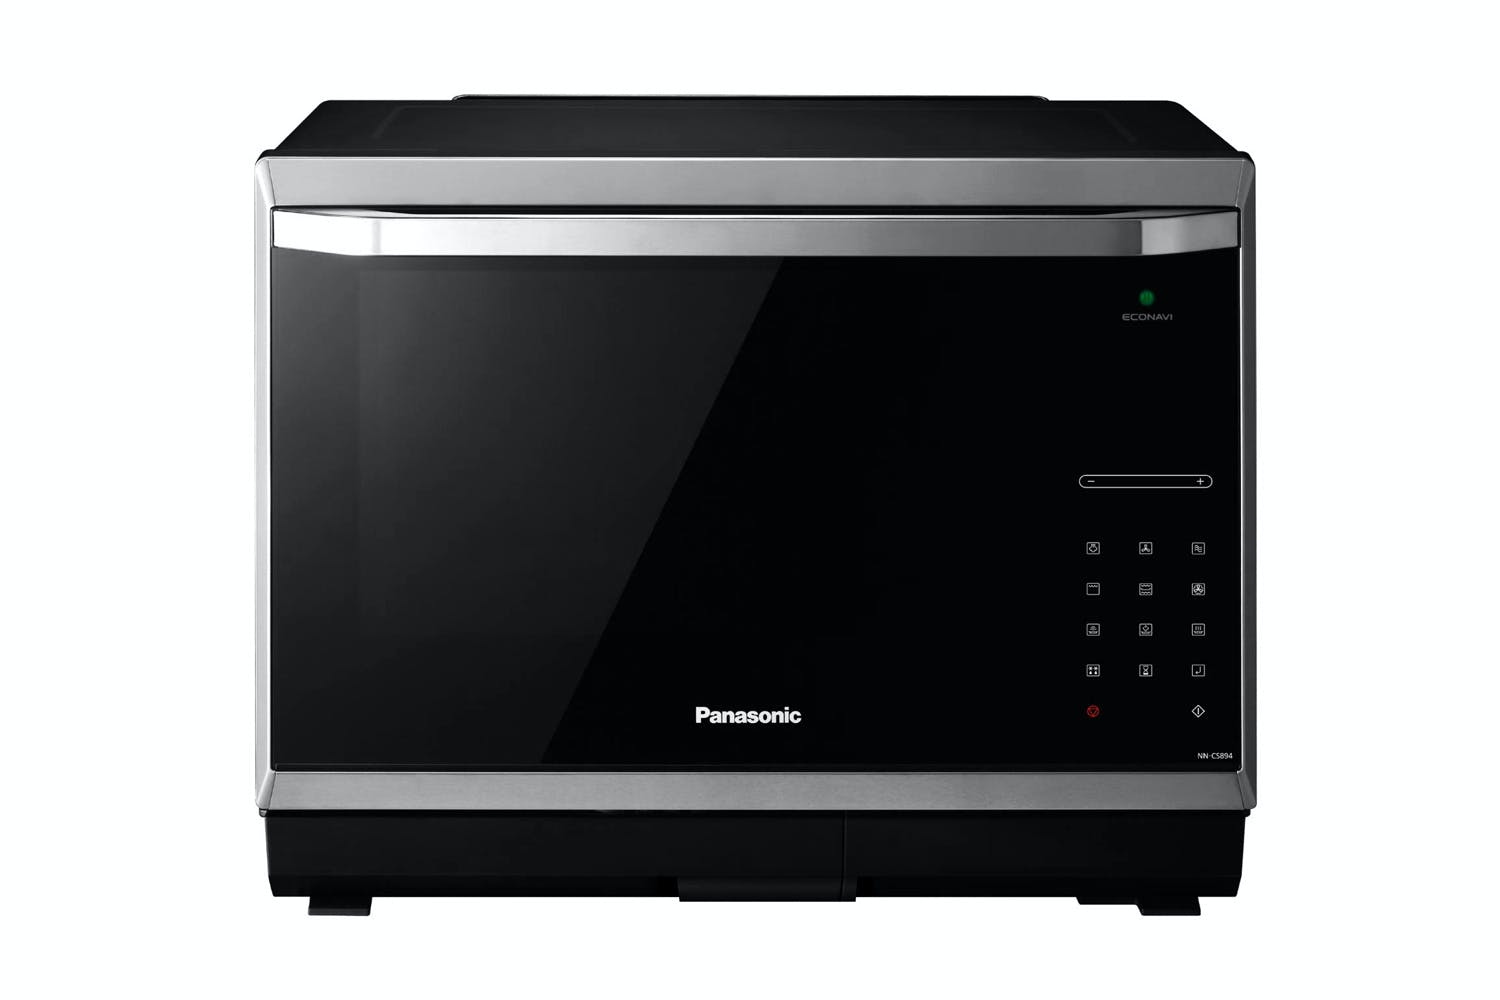 Panasonic 32l Convection Steam Microwave Oven Harvey Norman New Zealand